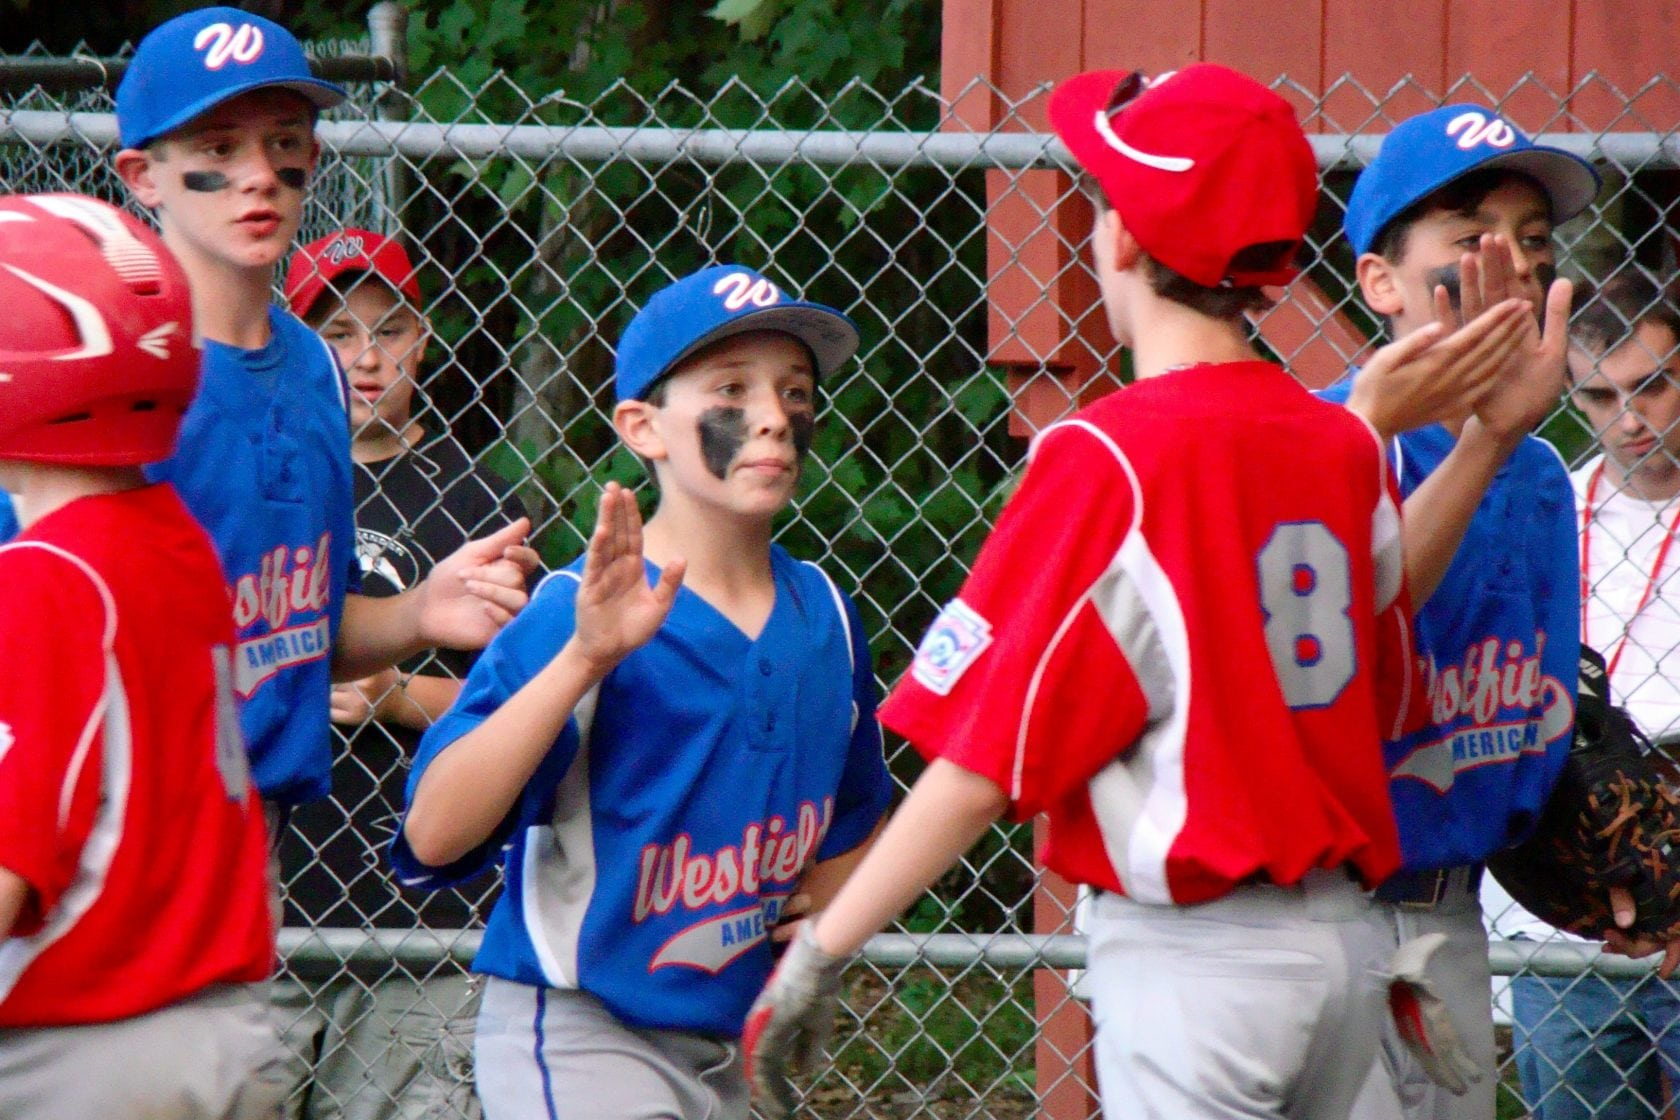 Why Your Kids Should Join The Westfield Little League